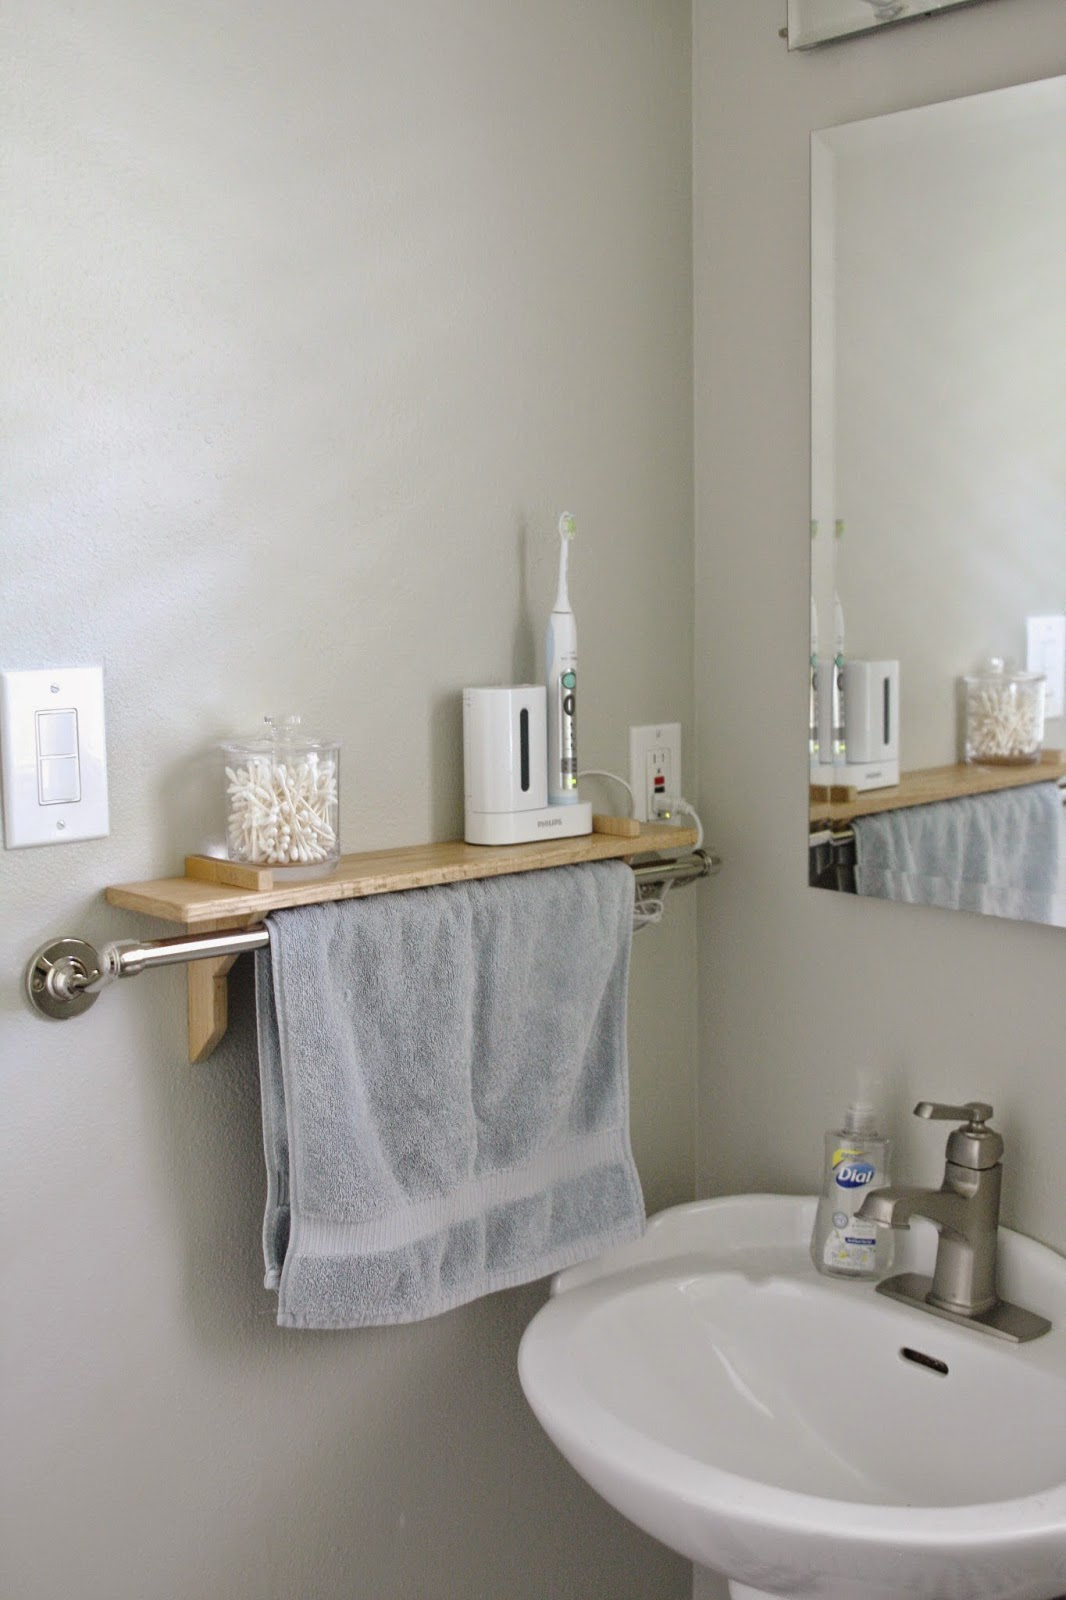 Simple The Towel Bar Shelf is intended for dry areas making it the perfect answer to this bathroom issue u